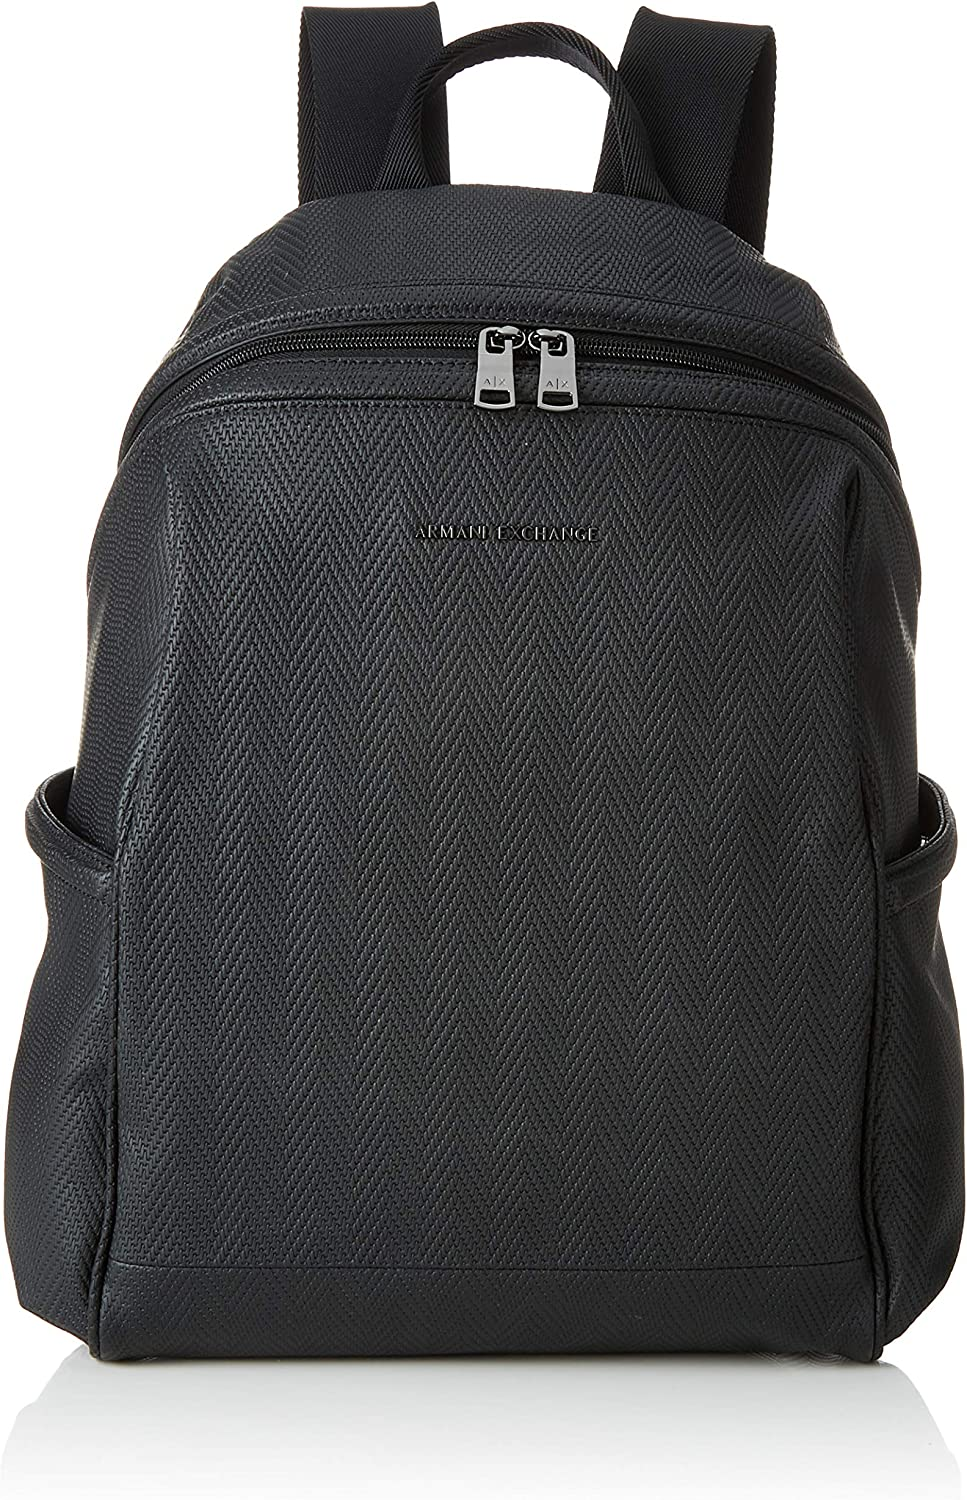 AX Armani Exchange Men's Boxy Zippered Backpack